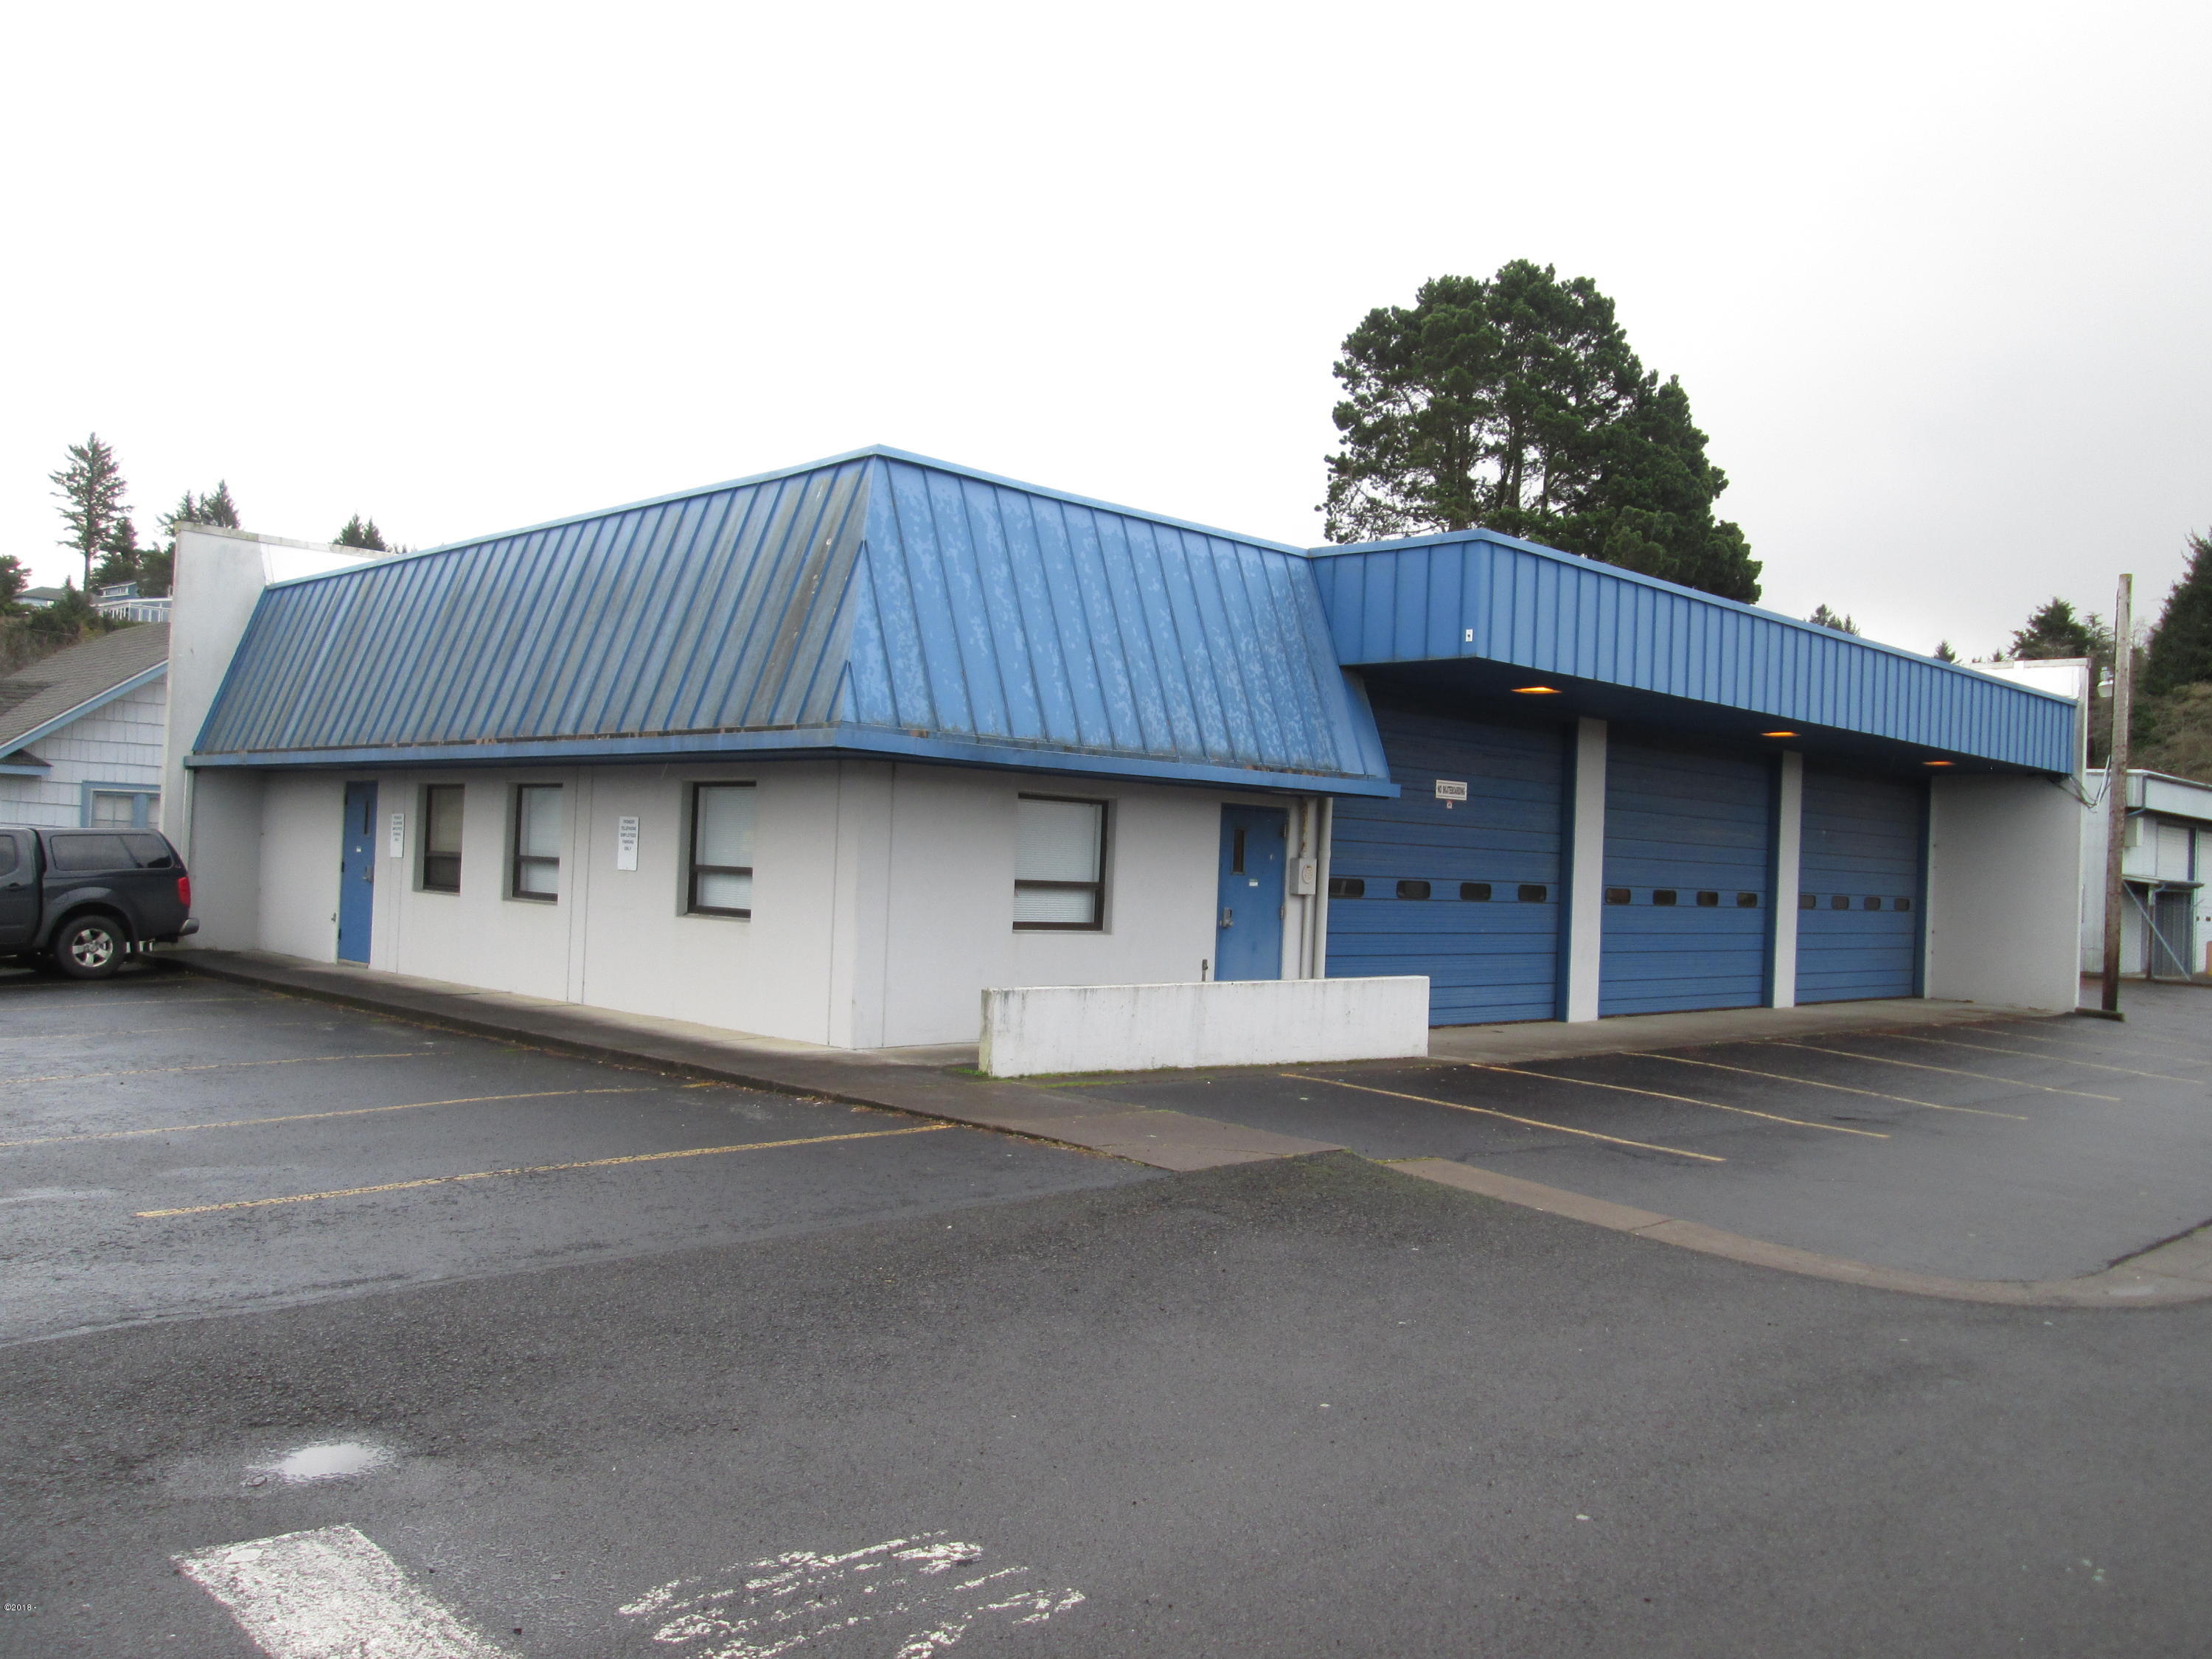 105 -115 SW Strawberry Ln, Waldport, OR 97394